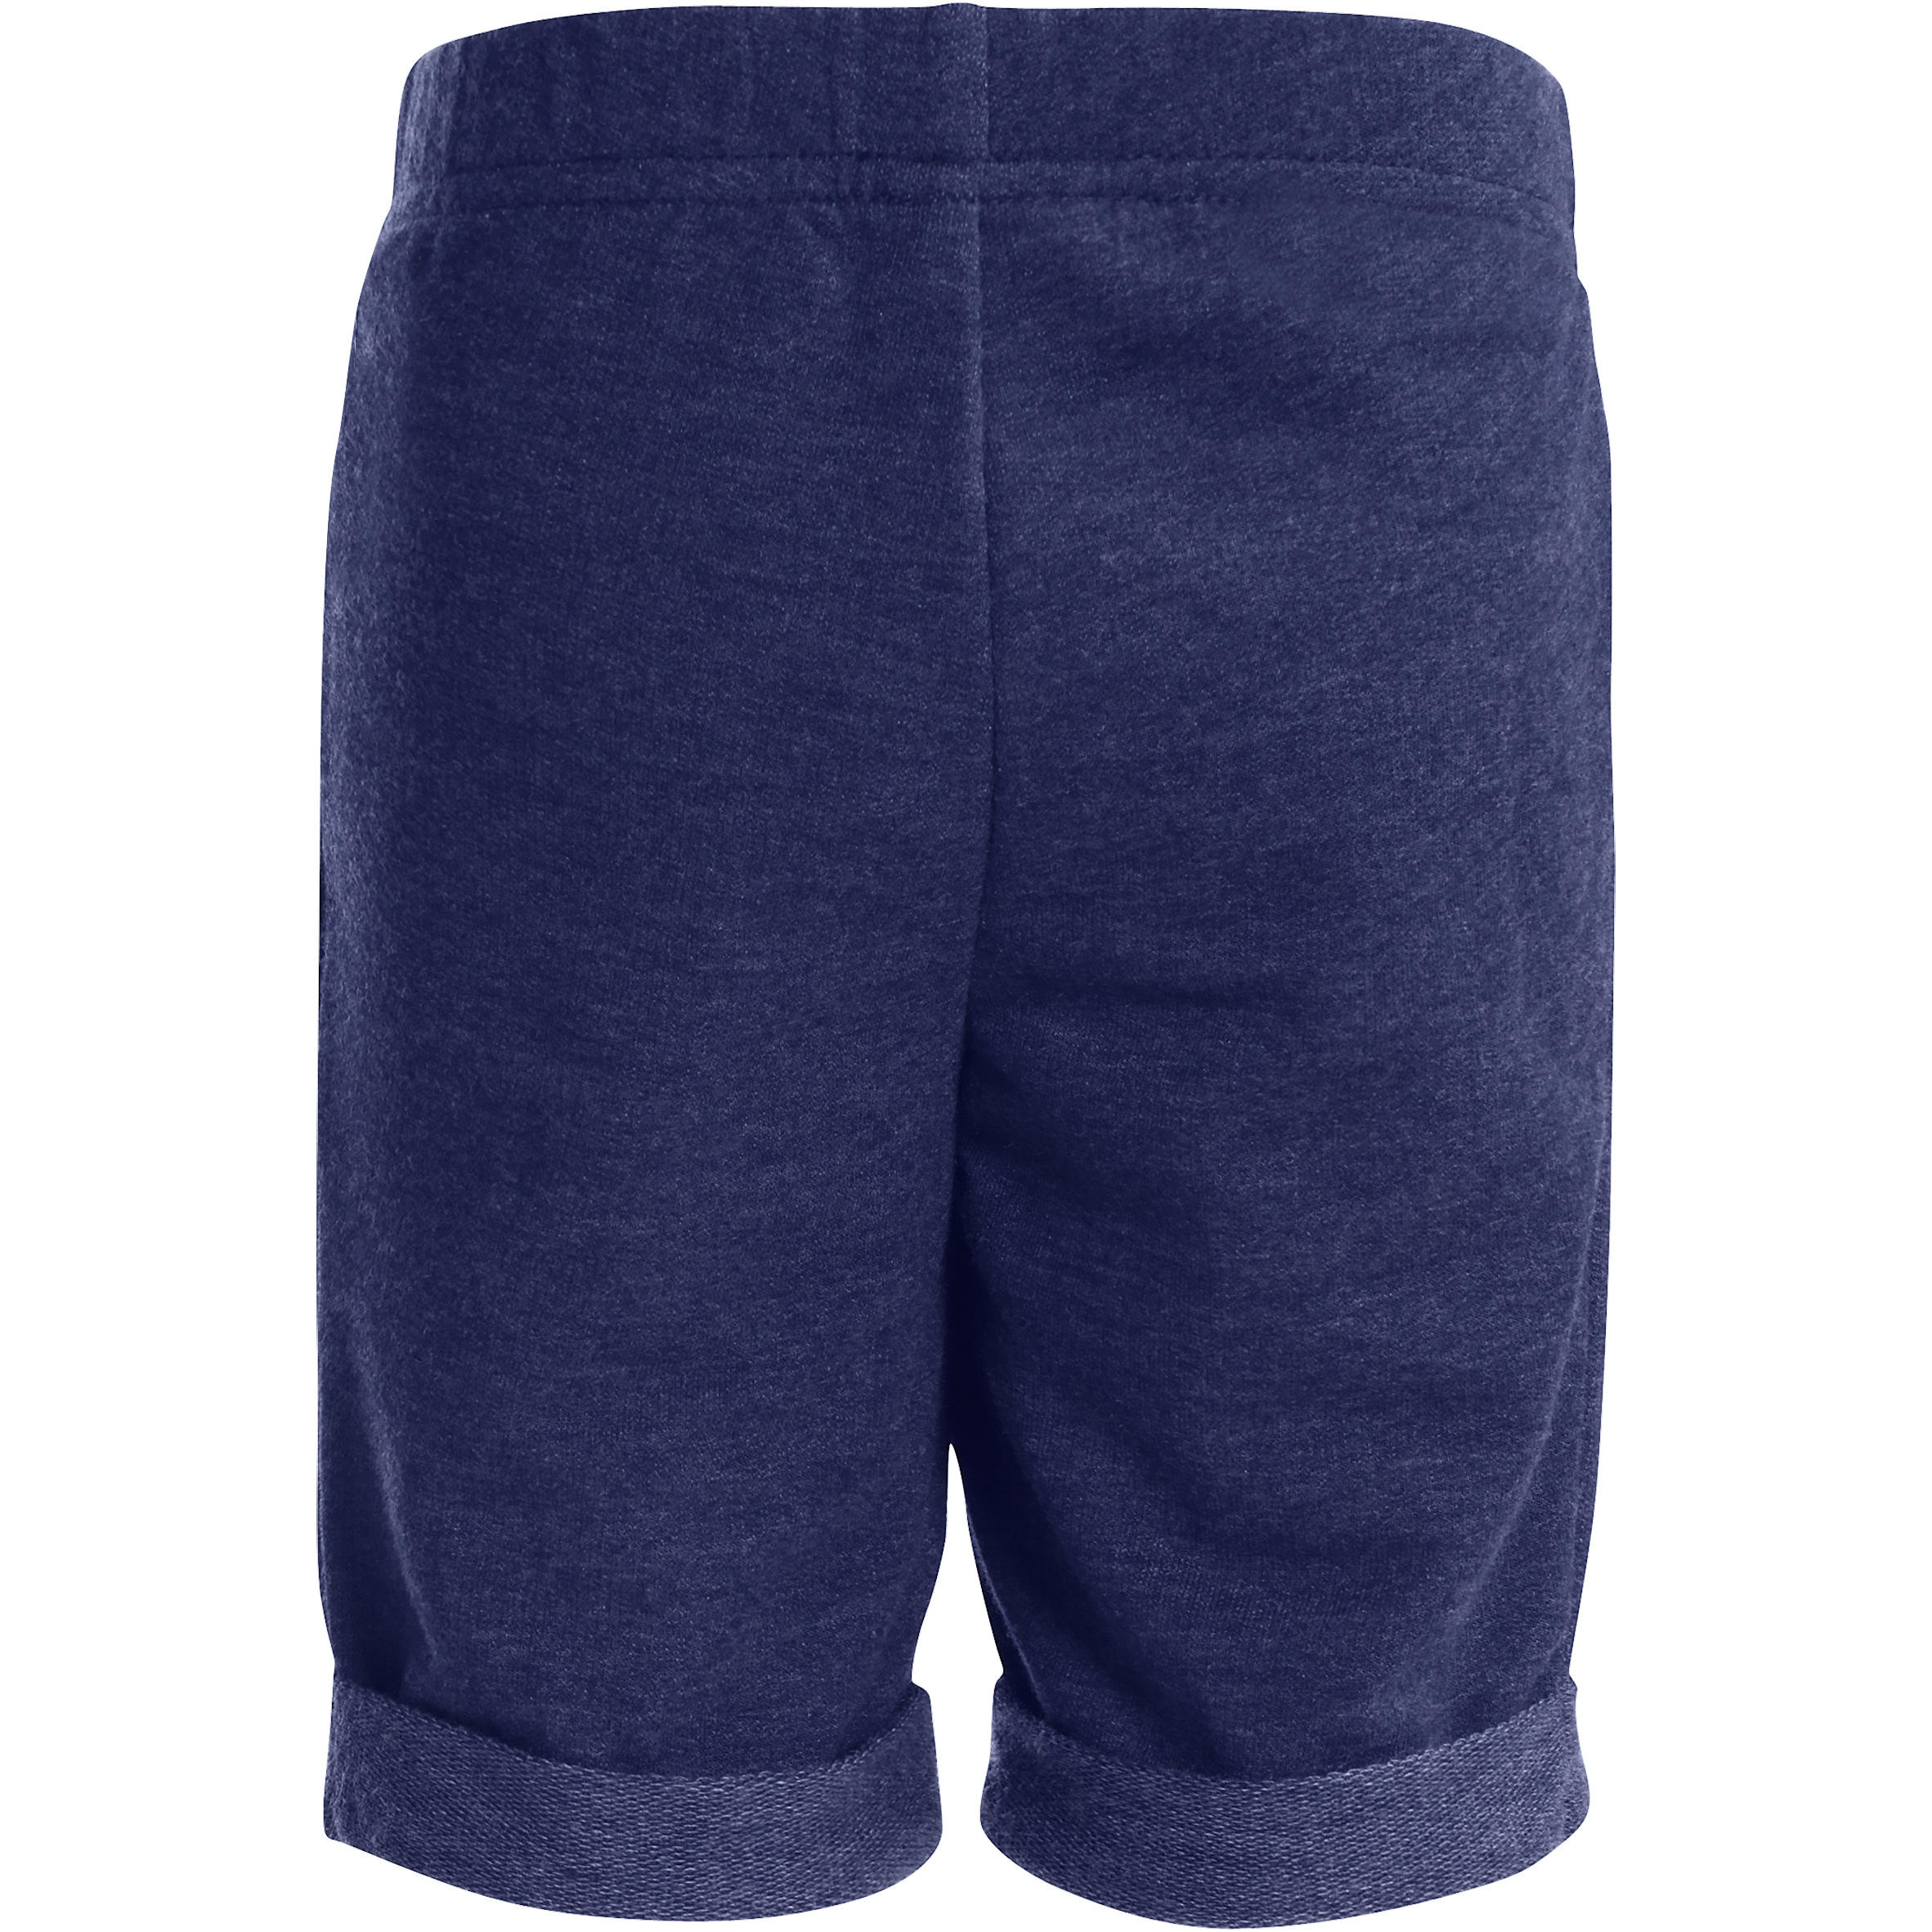 100 Baby Gym Shorts - Blue